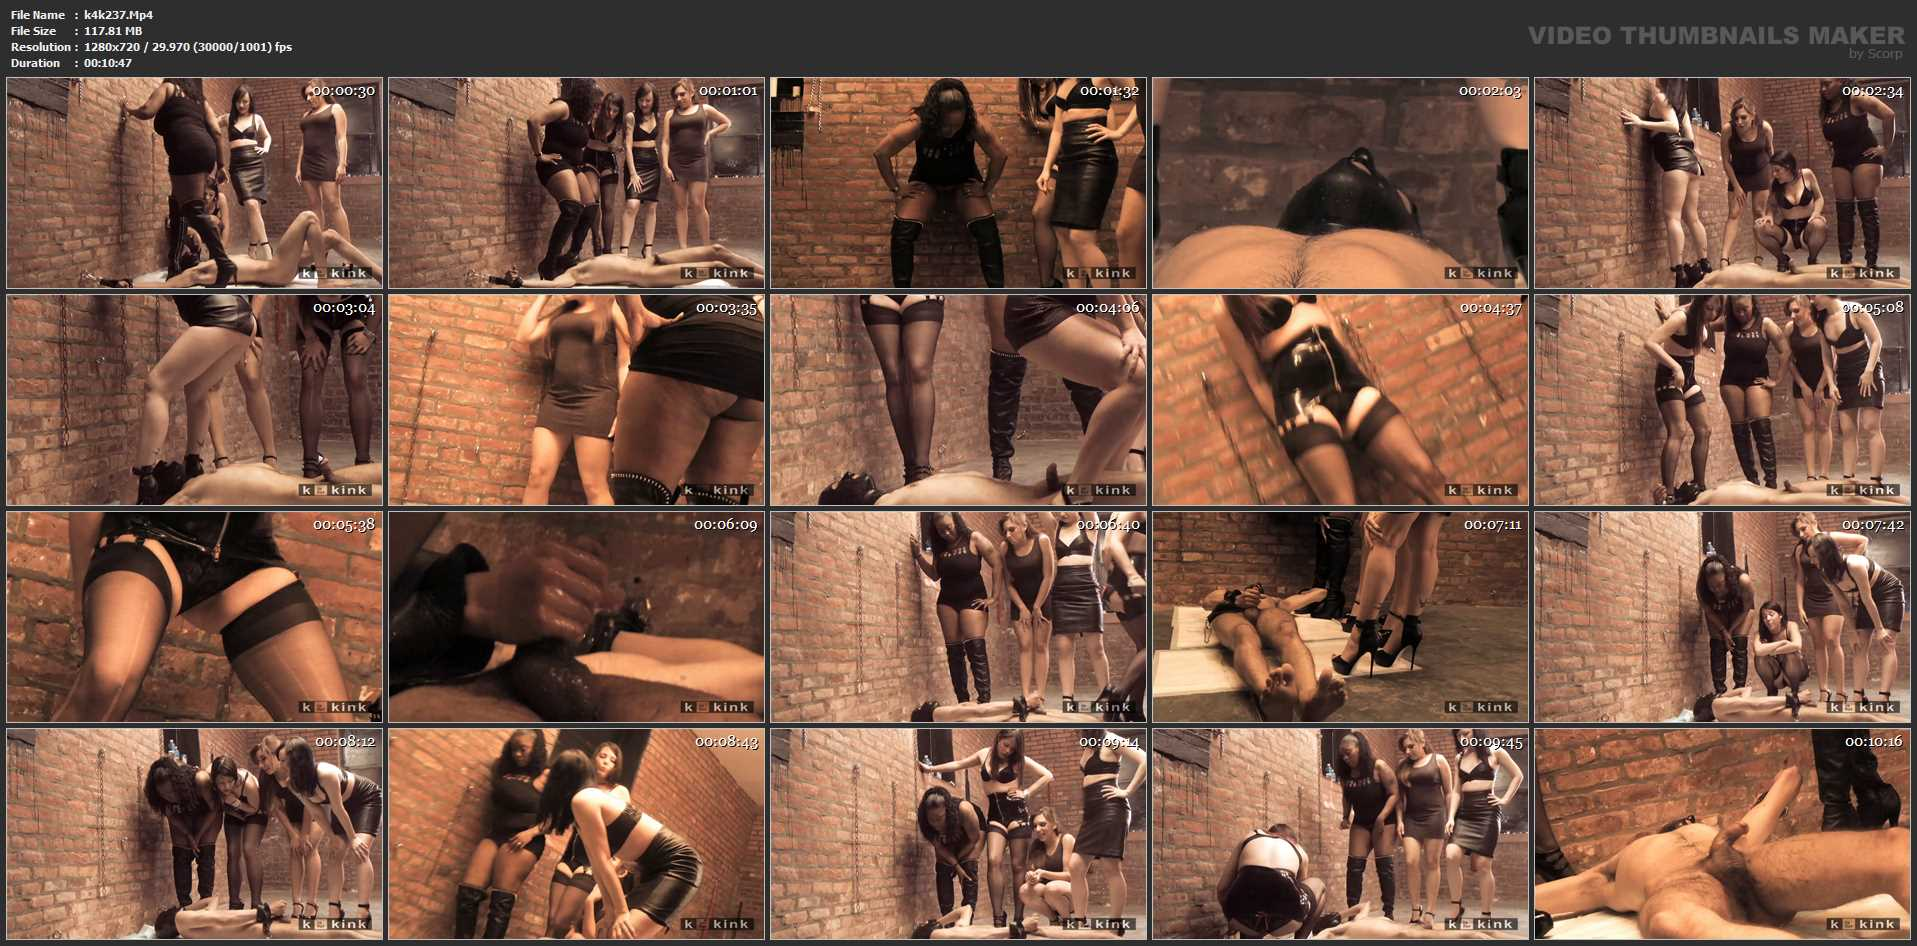 4 Domme Piss Fest - CLIPS4SALE / K IS FOR KINK: PREMIUM FEMDOM FILMS - HD/720p/MP4